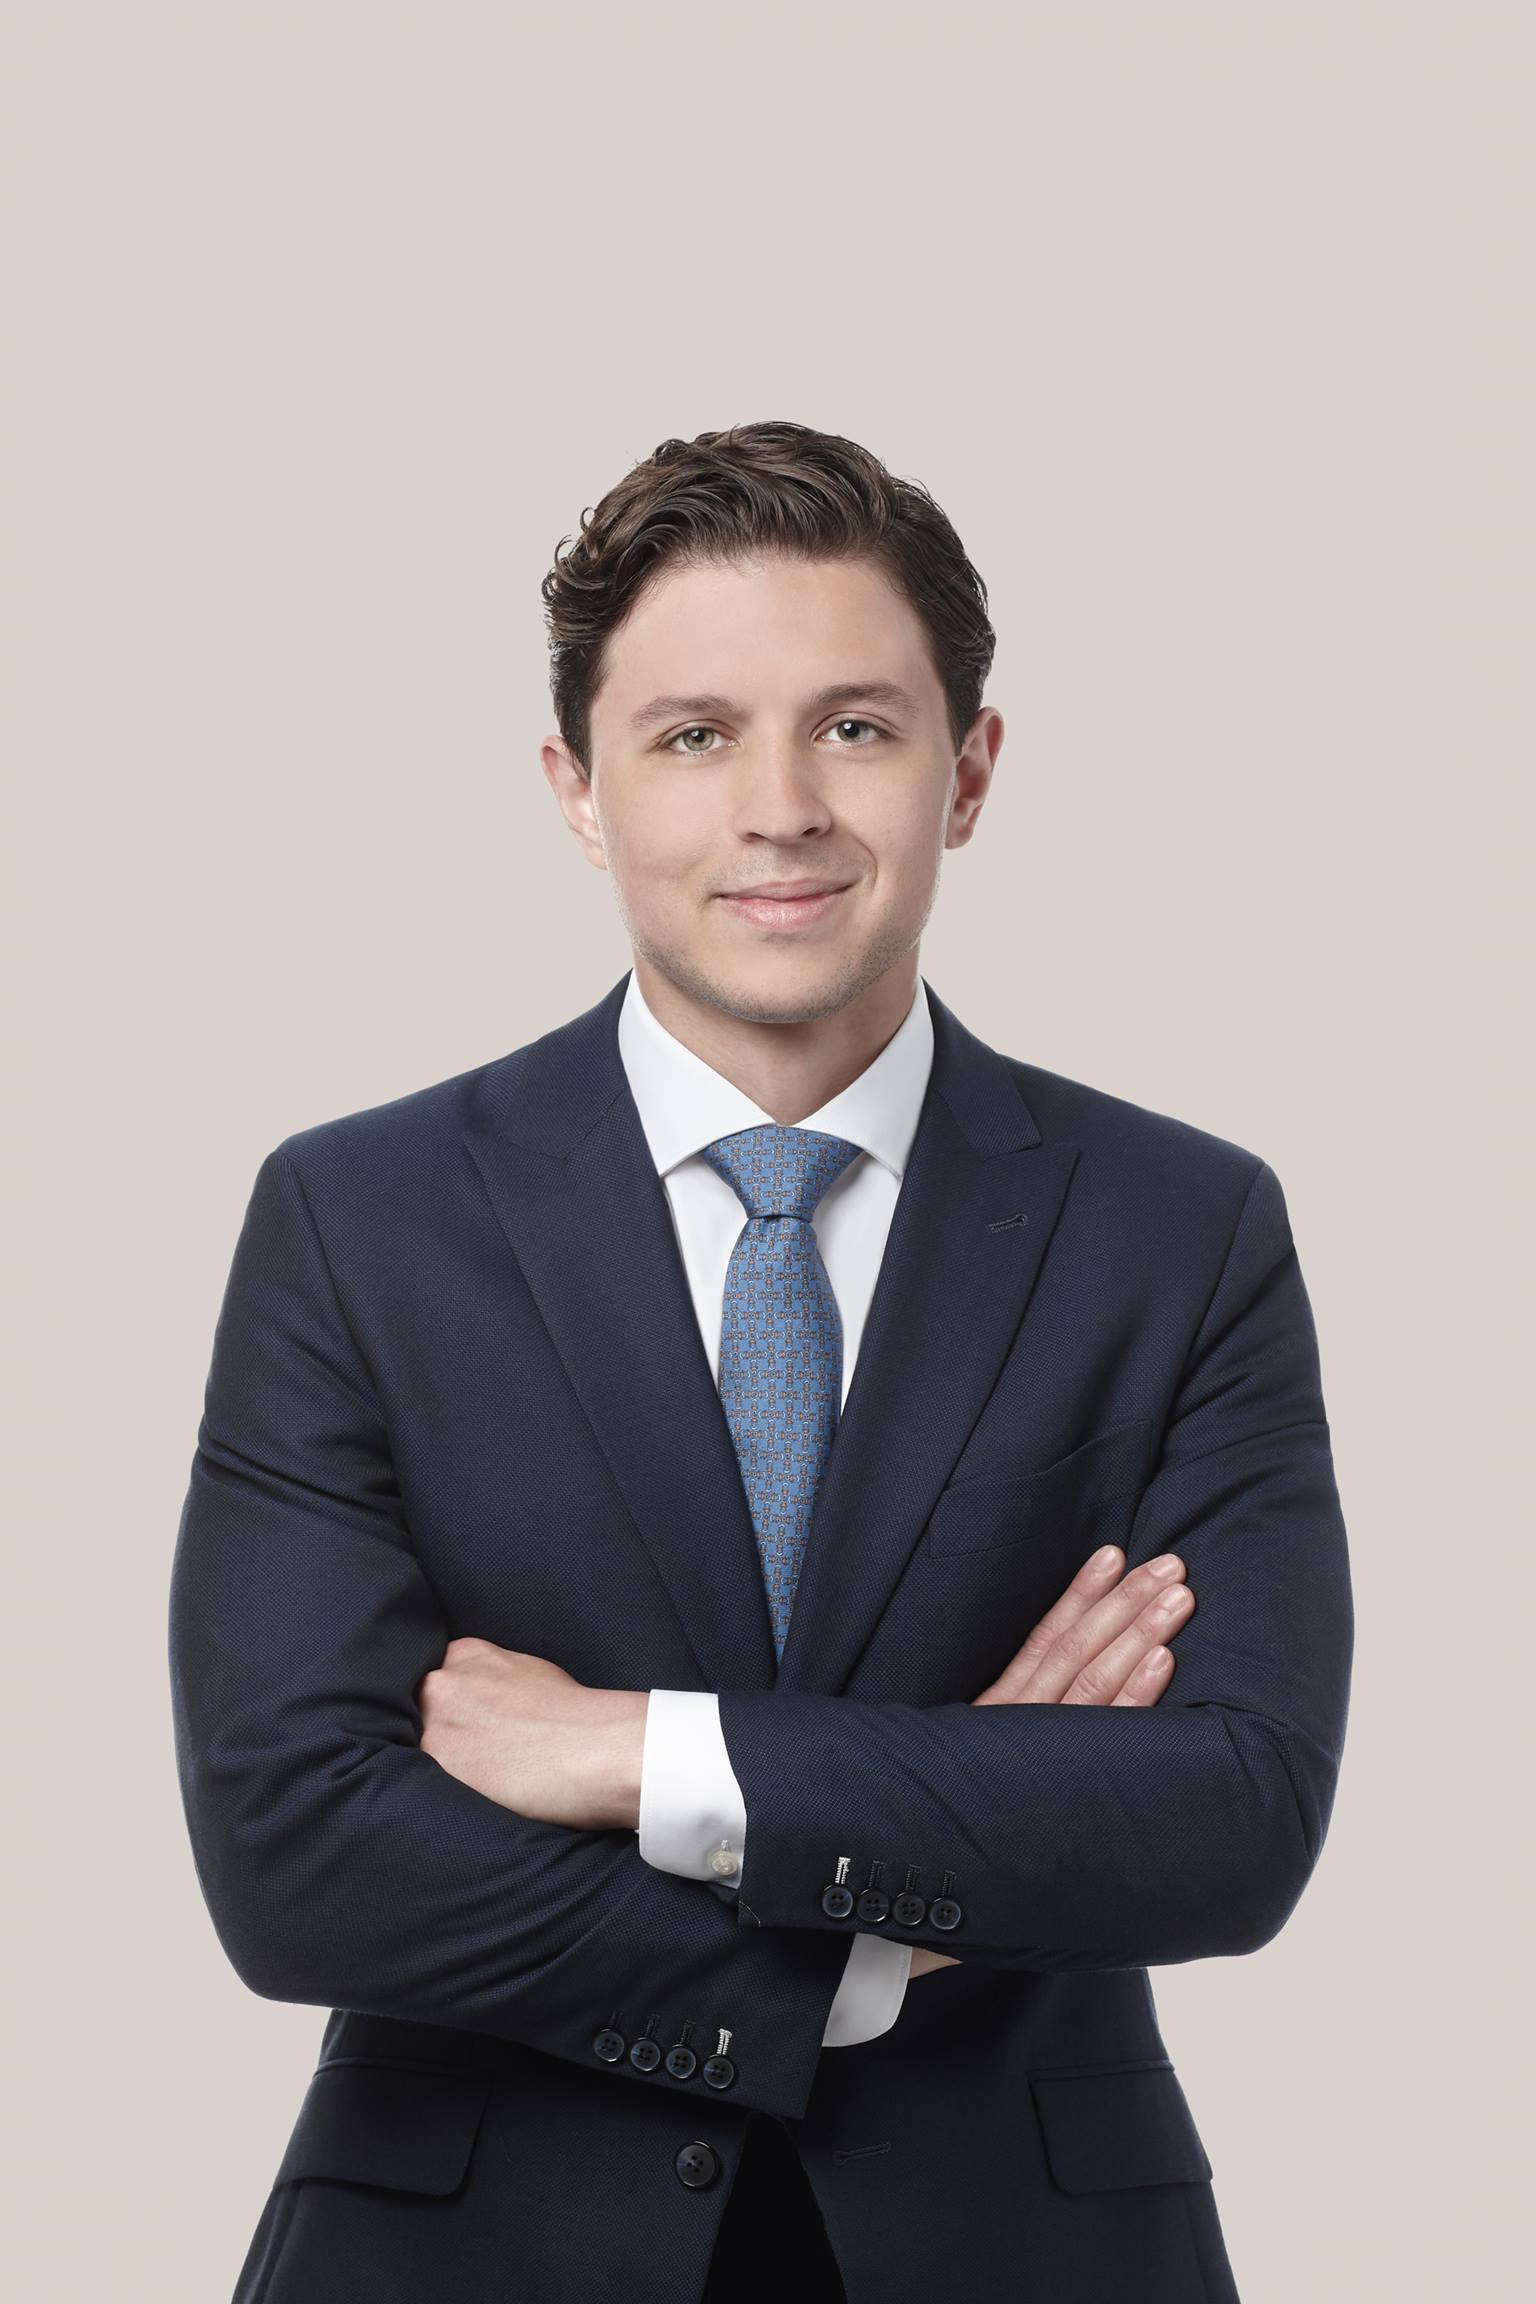 Oleg Stratiev | Corporate/Commercial Lawyer in Montréal